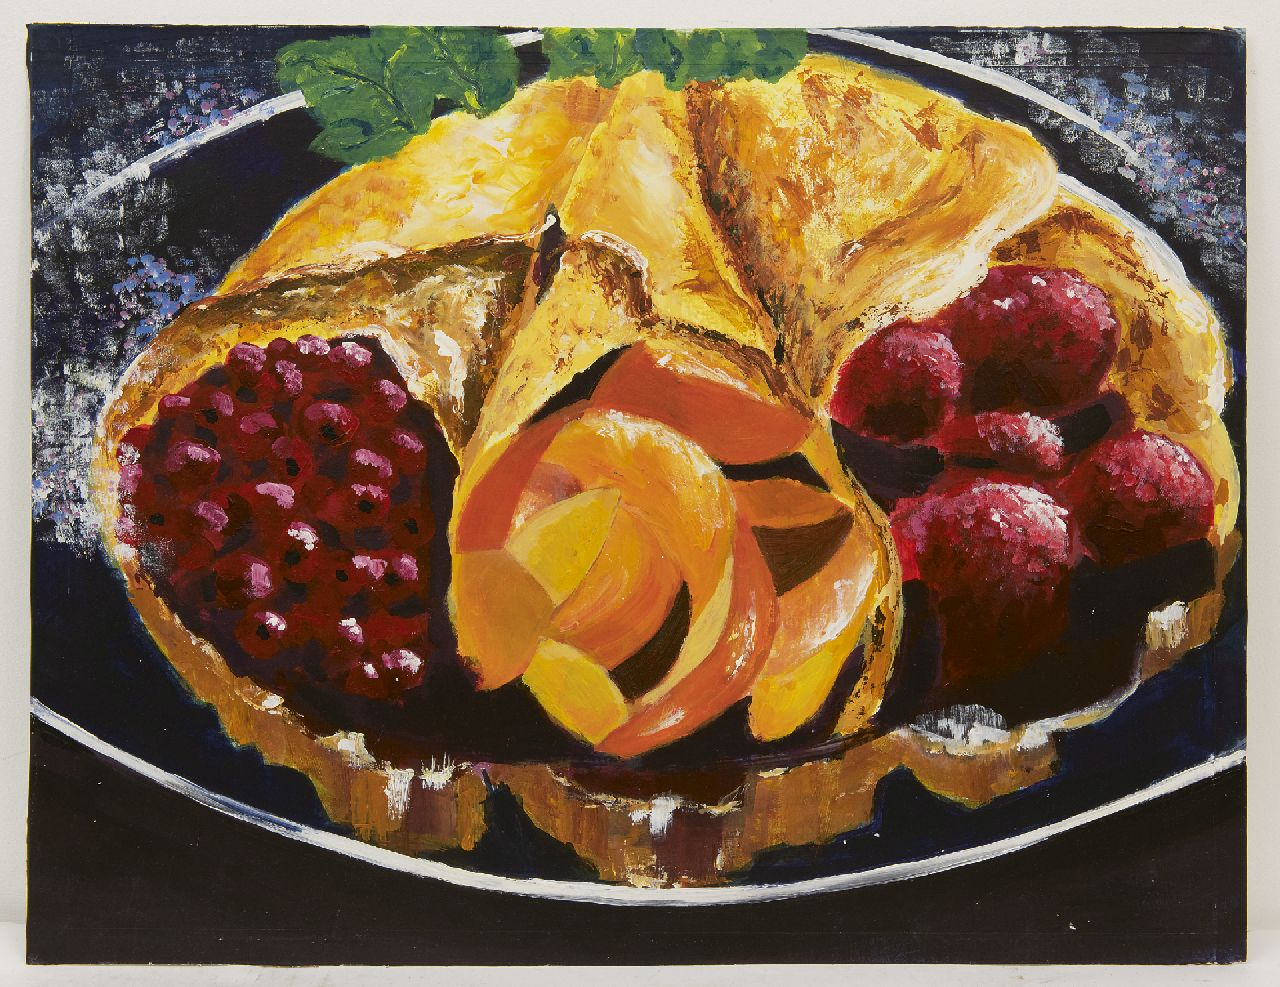 Onbekend, 20e eeuw   | Onbekend, 20e eeuw | Watercolours and drawings offered for sale | Crêpes with fruit, gouache on paper 54.8 x 71.0 cm